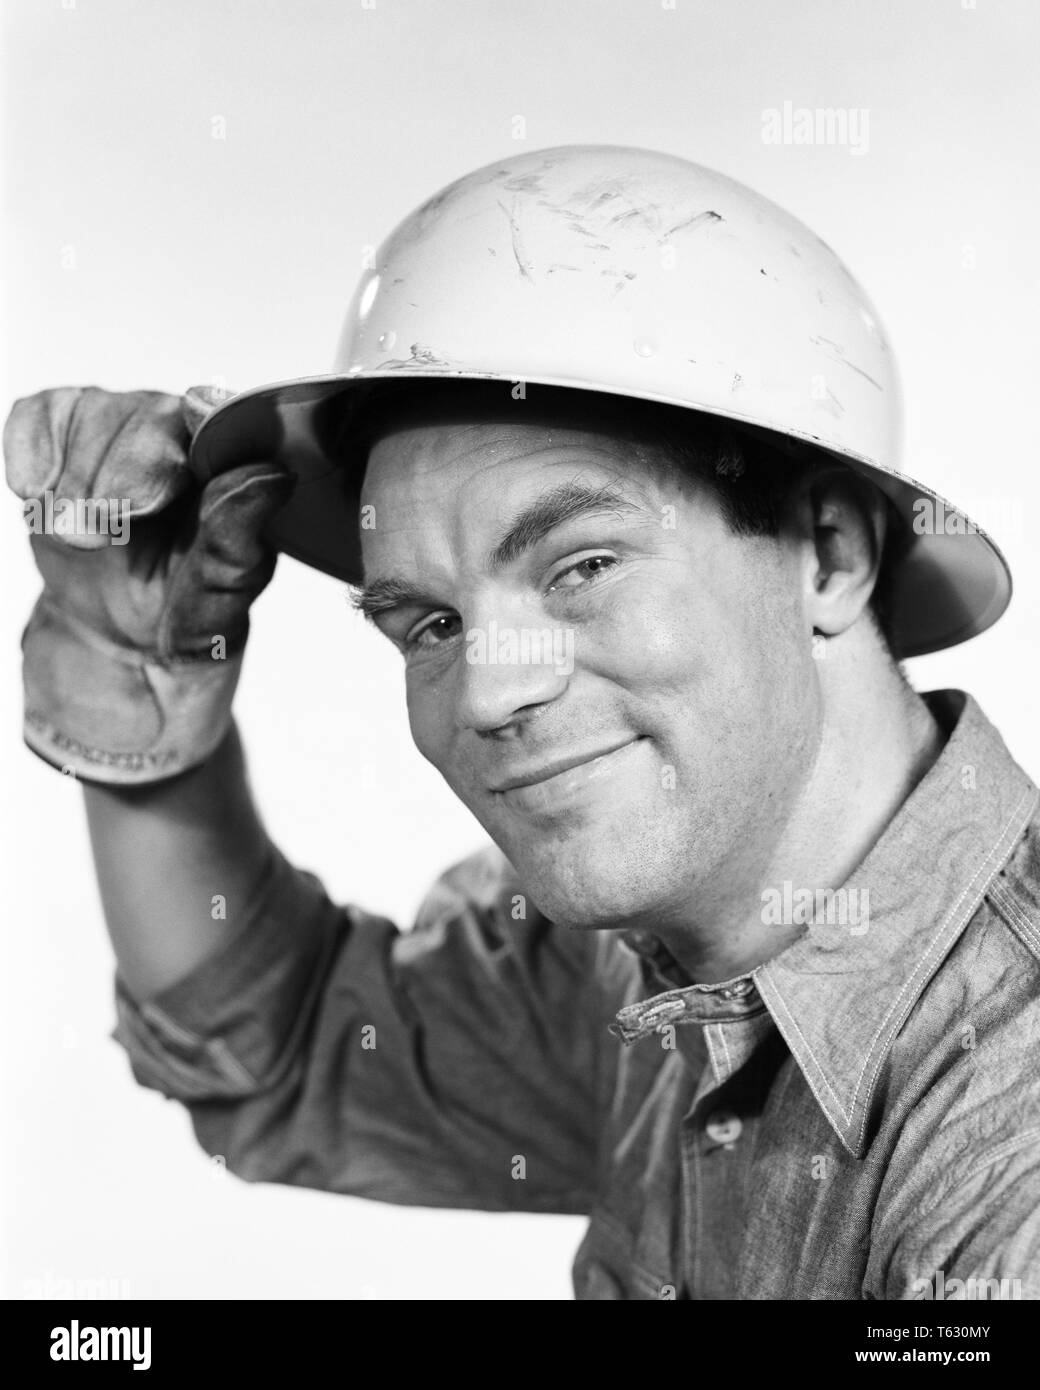 1960s CONSTRUCTION WORKER TIPPING HIS HARD HAT LOOKING AT CAMERA - s8756 HAR001 HARS B&W EYE CONTACT BLUE COLLAR SKILL OCCUPATION SKILLS HEAD AND SHOULDERS CHEERFUL HIS PROTECTION HARD HAT LABOR EMPLOYMENT OCCUPATIONS SMILES JOYFUL EMPLOYEE COOPERATION MID-ADULT MID-ADULT MAN TIPPING BLACK AND WHITE CAUCASIAN ETHNICITY HAR001 LABORING OLD FASHIONED - Stock Image